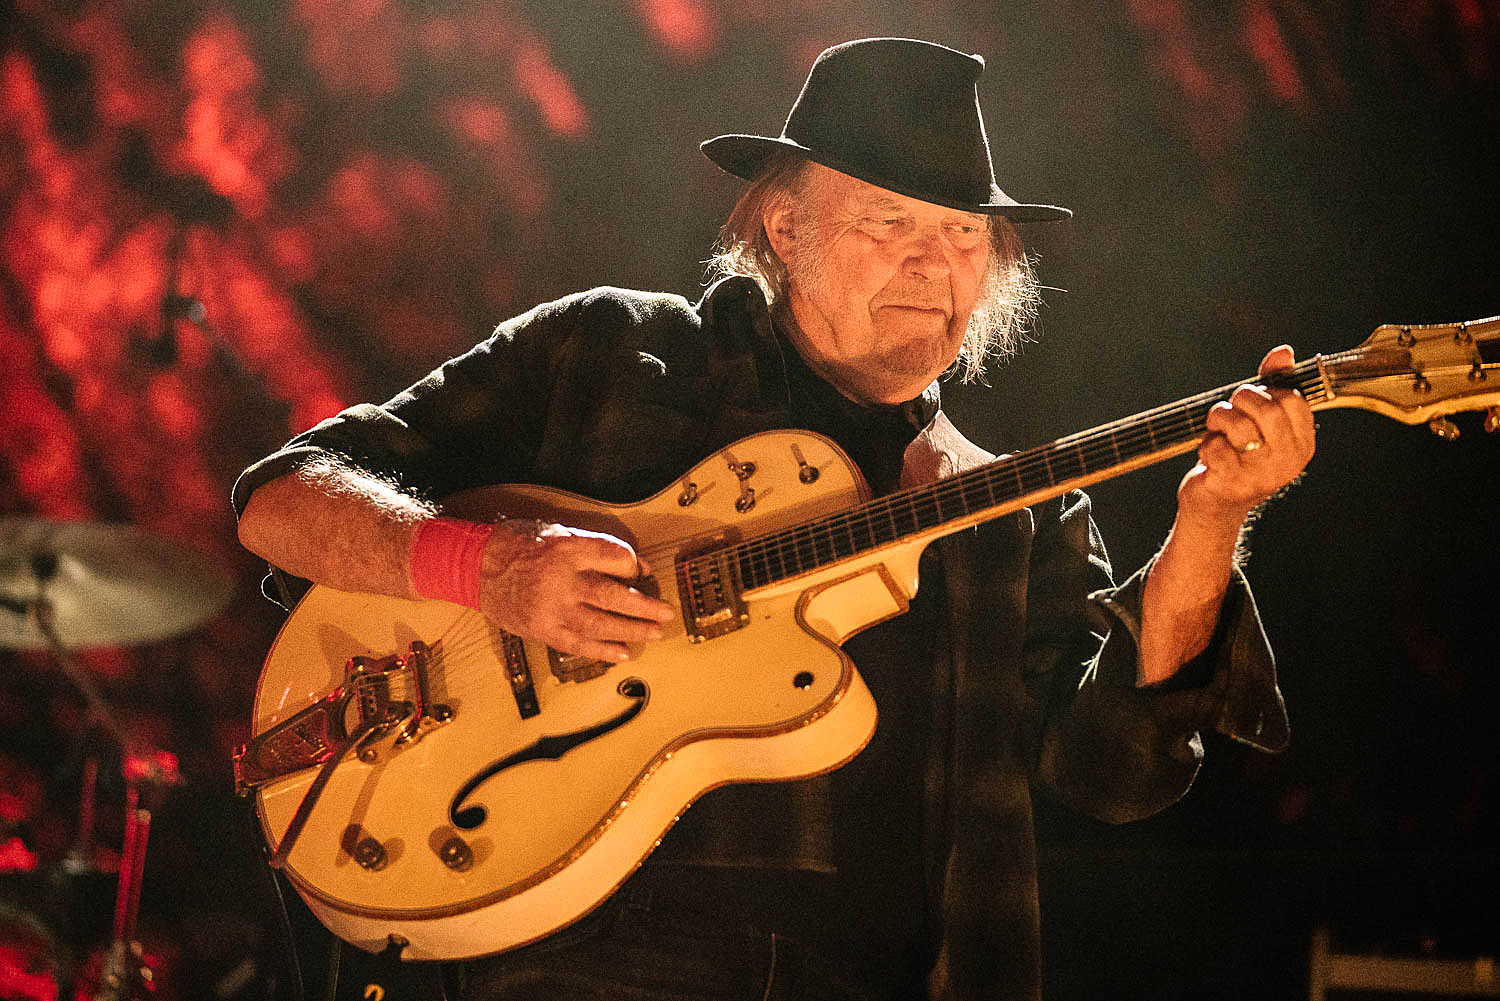 Neil Young Gets Unplugged, Continues Playing at BottleRock Festival